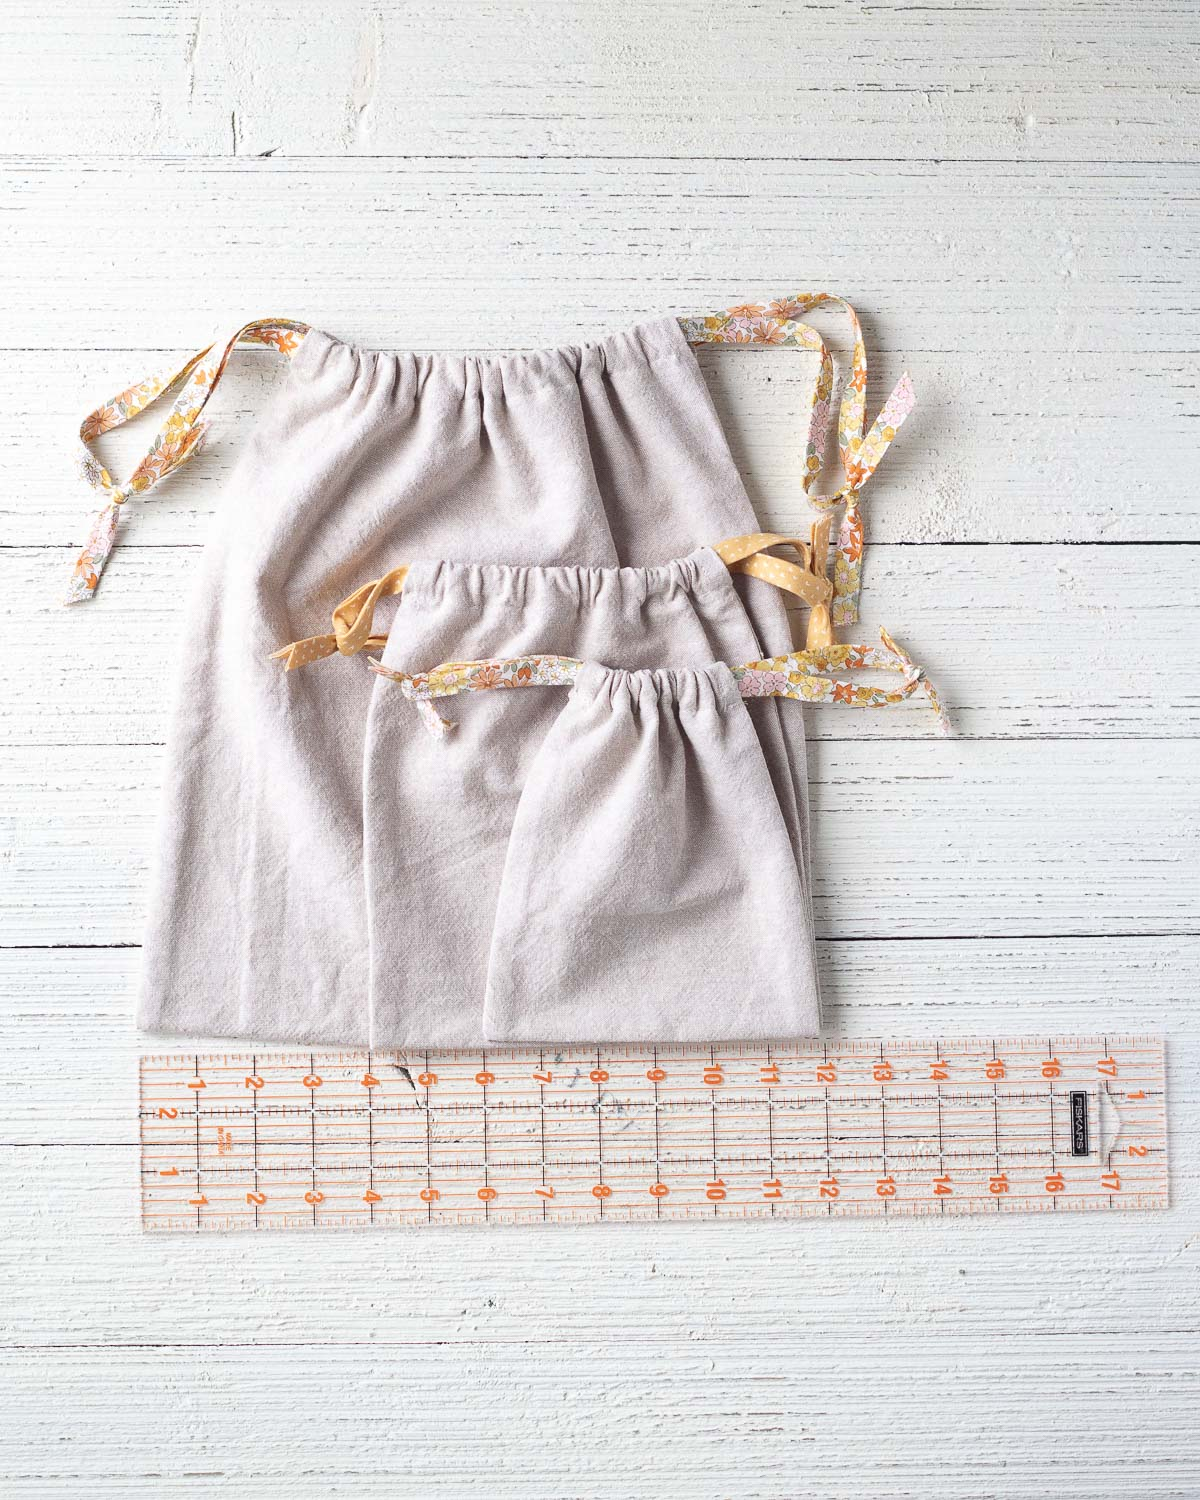 Three drawstring bags on a wooden surface with a ruler.